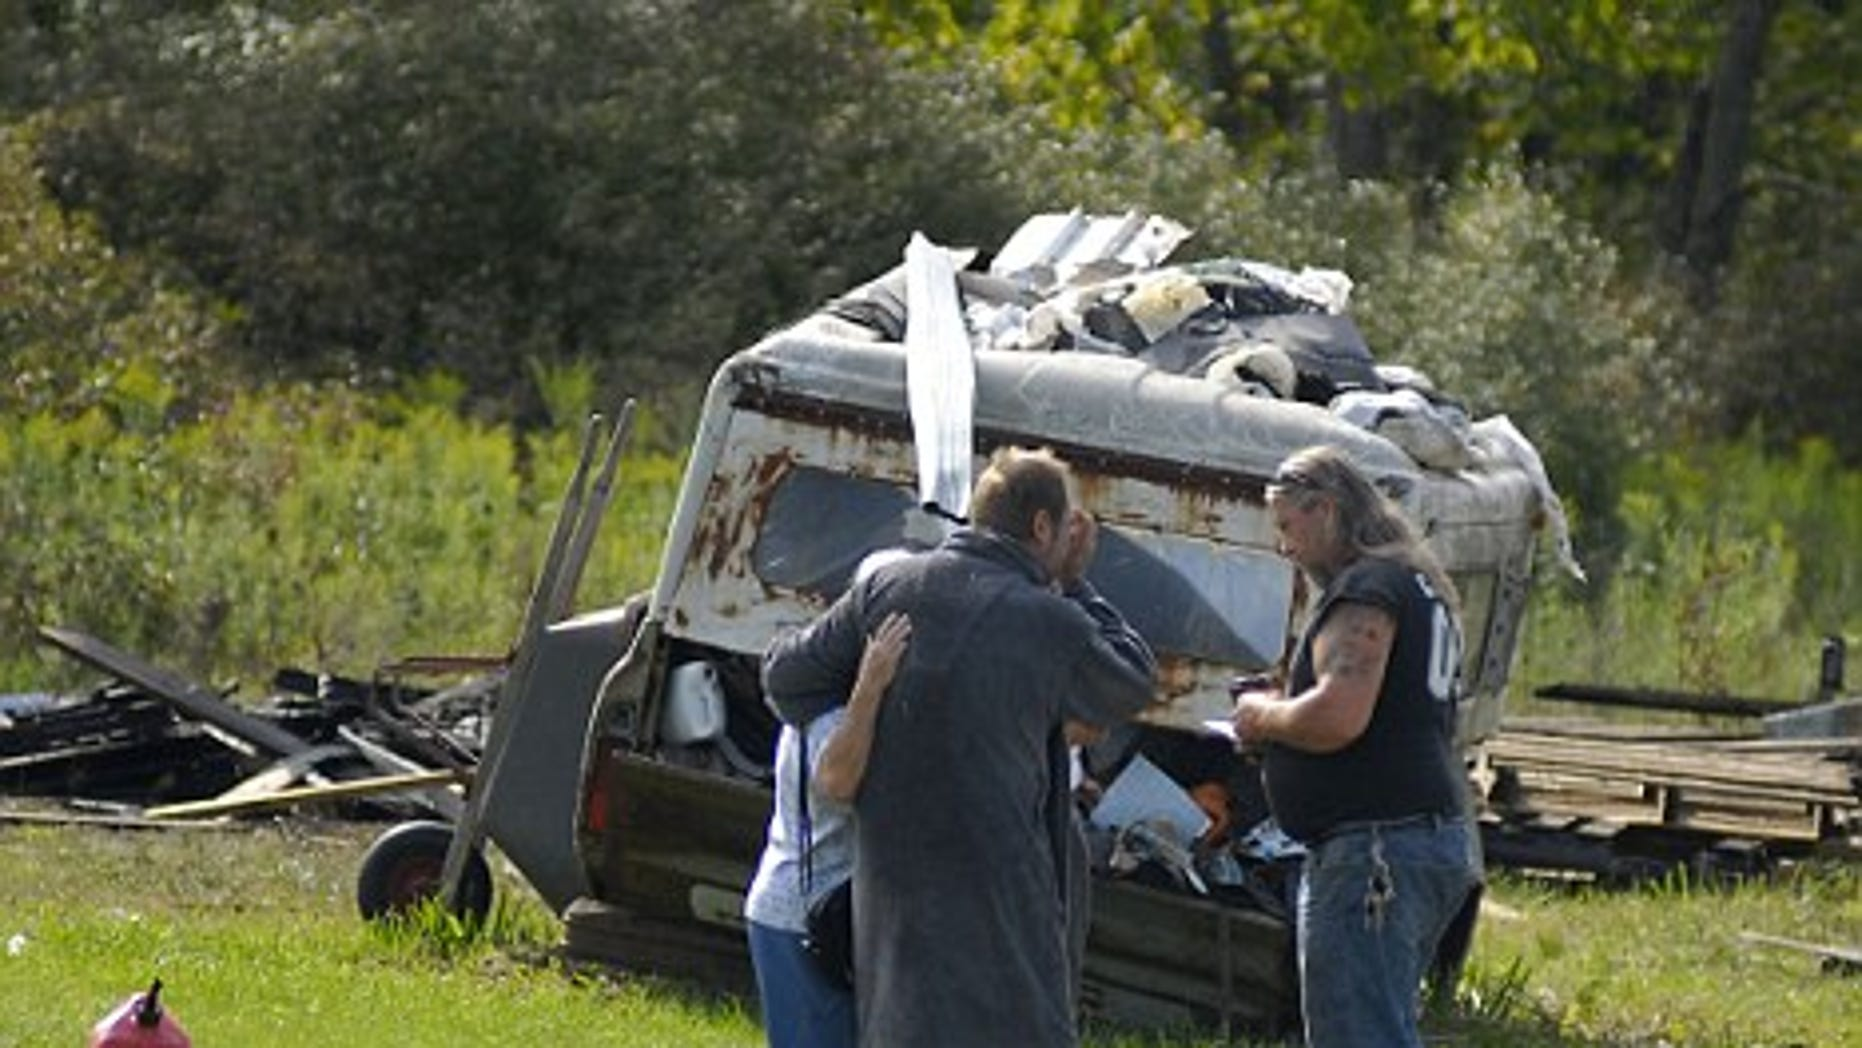 Aug. 18, 2012: Siblings killed in large explosion from home bonfire.